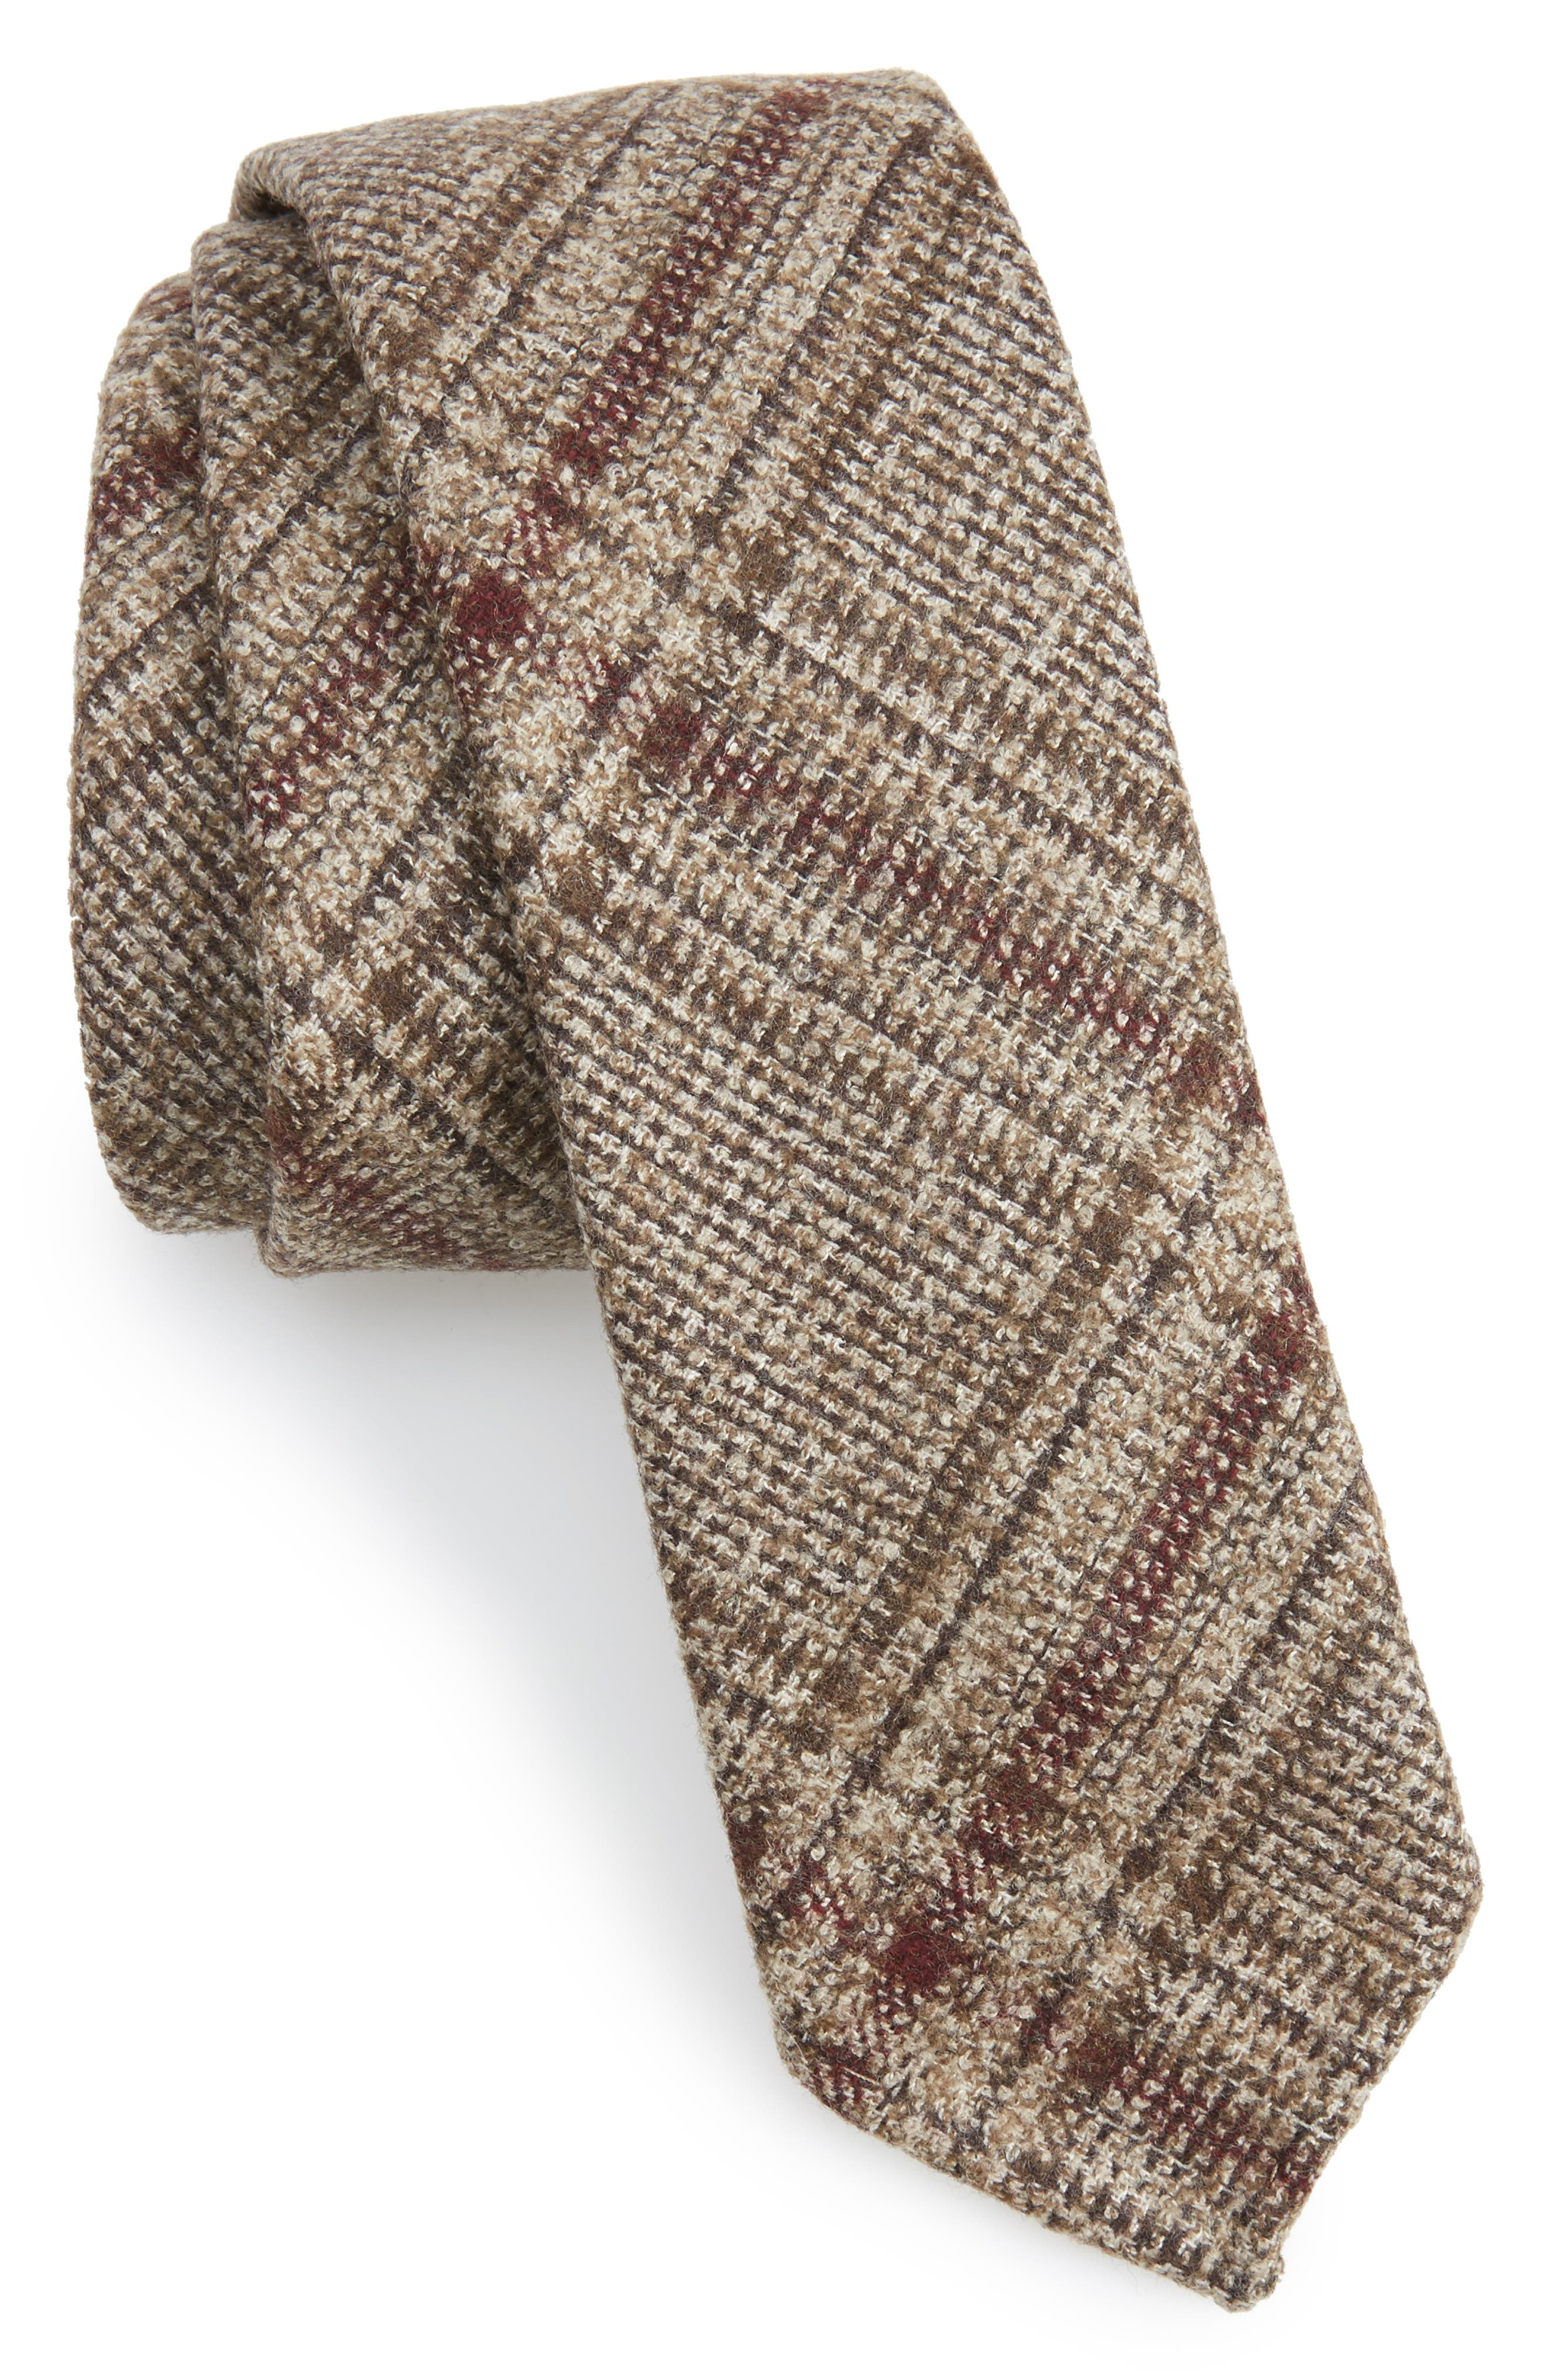 Glencheck Wool Blend Skinny Tie,                             Main thumbnail 1, color,                             255